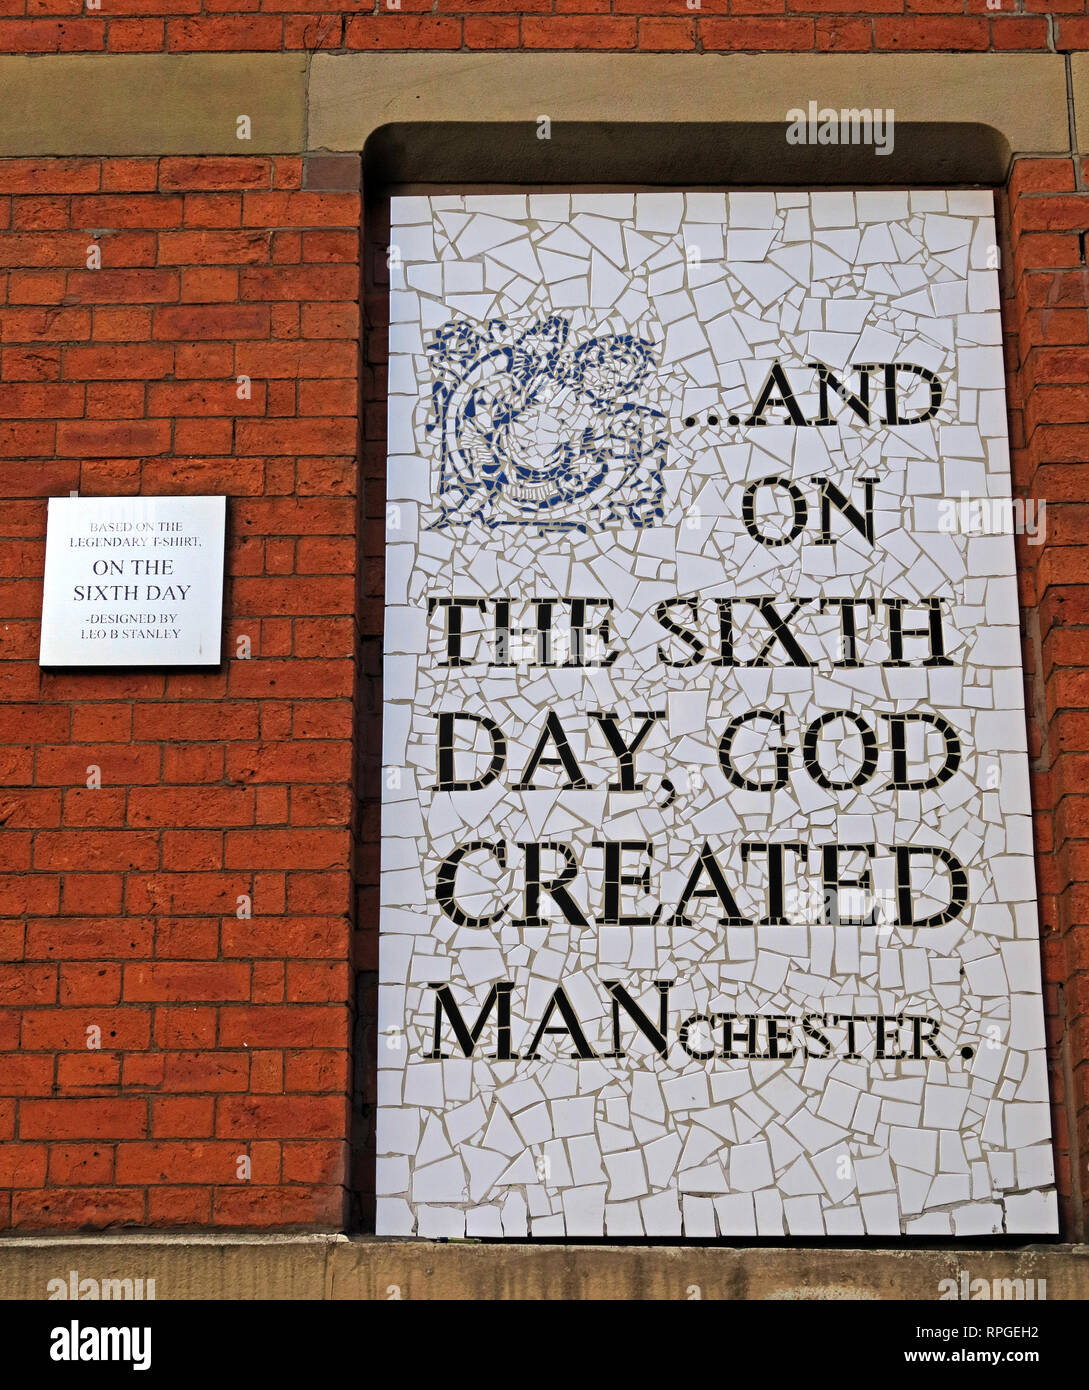 On the sixth day, God Created Manchester, Afflecks palace, Tib St, Manchester, Lancashire, England, UK, M4 1PW - Stock Image